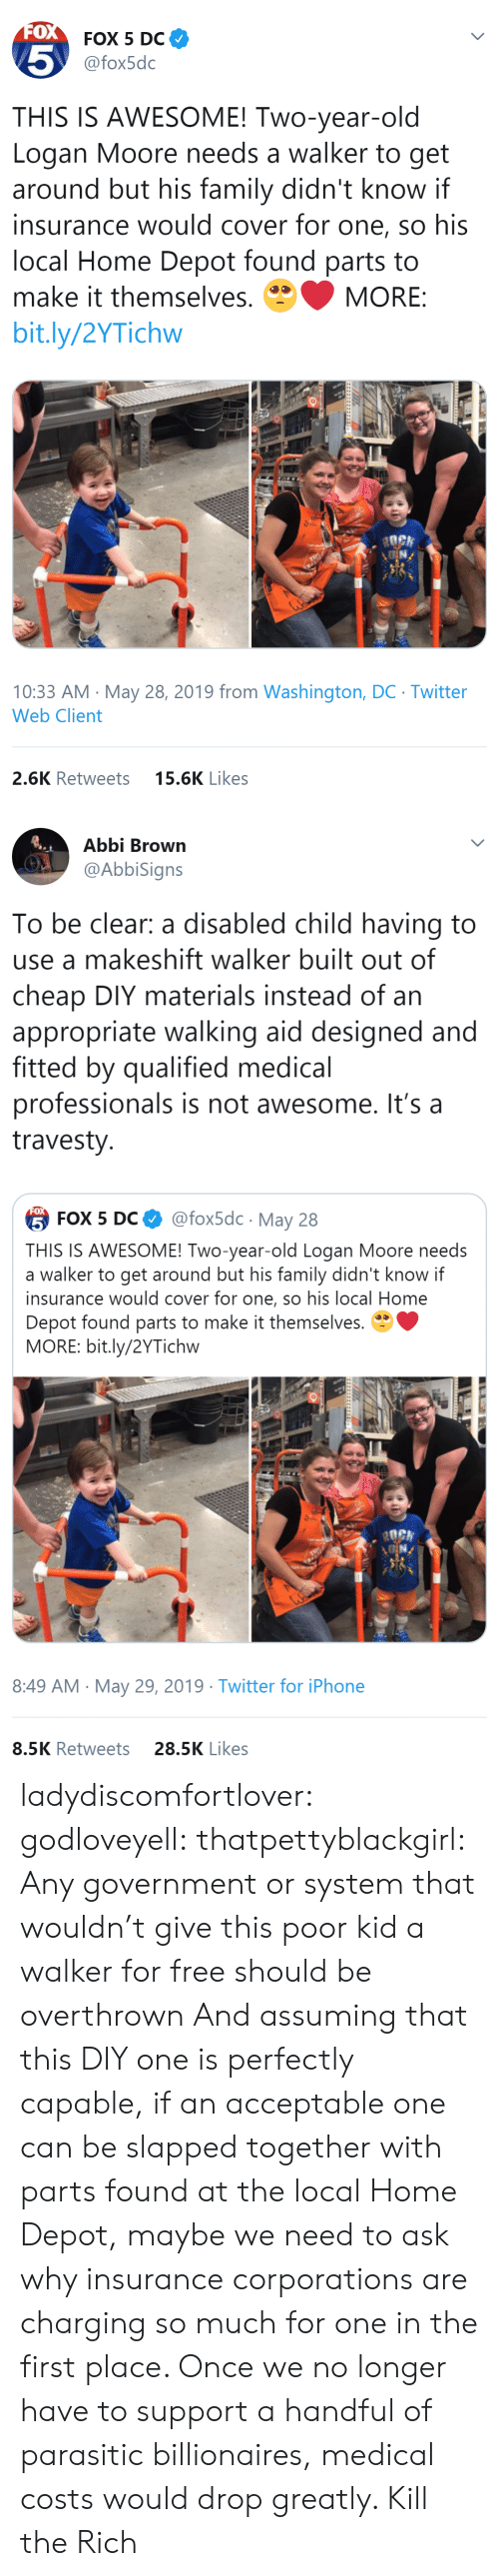 Disabled: FOX  FOX 5 DC  5  @fox5dc  THIS IS AWESOME! Two-year-old  Logan Moore needs a walker to get  around but his family didn't know if  insurance would cover for one, so his  local Home Depot found parts to  make it themselves.  MORE:  bit.ly/2YTichw  10:33 AM May 28, 2019 from Washington, DC Twitter  Web Client  15.6K Likes  2.6K Retweets   Abbi Brown  @AbbiSigns  To be clear: a disabled child having to  use a makeshift walker built out of  cheap DIY materials instead of an  appropriate walking aid designed and  fitted by qualified medical  professionals is not awesome. It's a  travesty  FOX  @fox5dc May 28  5 FOX 5 DС  THIS IS AWESOME! Two-year-old Logan Moore needs  a walker to get around but his family didn't know if  insurance would cover for one, so his local Home  Depot found parts to make it themselves.  MORE: bit.ly/2YTichw  8:49 AM May 29, 2019 Twitter for iPhone  28.5K Likes  8.5K Retweets ladydiscomfortlover: godloveyell:  thatpettyblackgirl:  Any government or system that wouldn't give this poor kid a walker for free should be overthrown   And assuming that this DIY one is perfectly capable, if an acceptable one can be slapped together with parts found at the local Home Depot, maybe we need to ask why insurance corporations are charging so much for one in the first place.  Once we no longer have to support a handful of parasitic billionaires, medical costs would drop greatly.    Kill the Rich